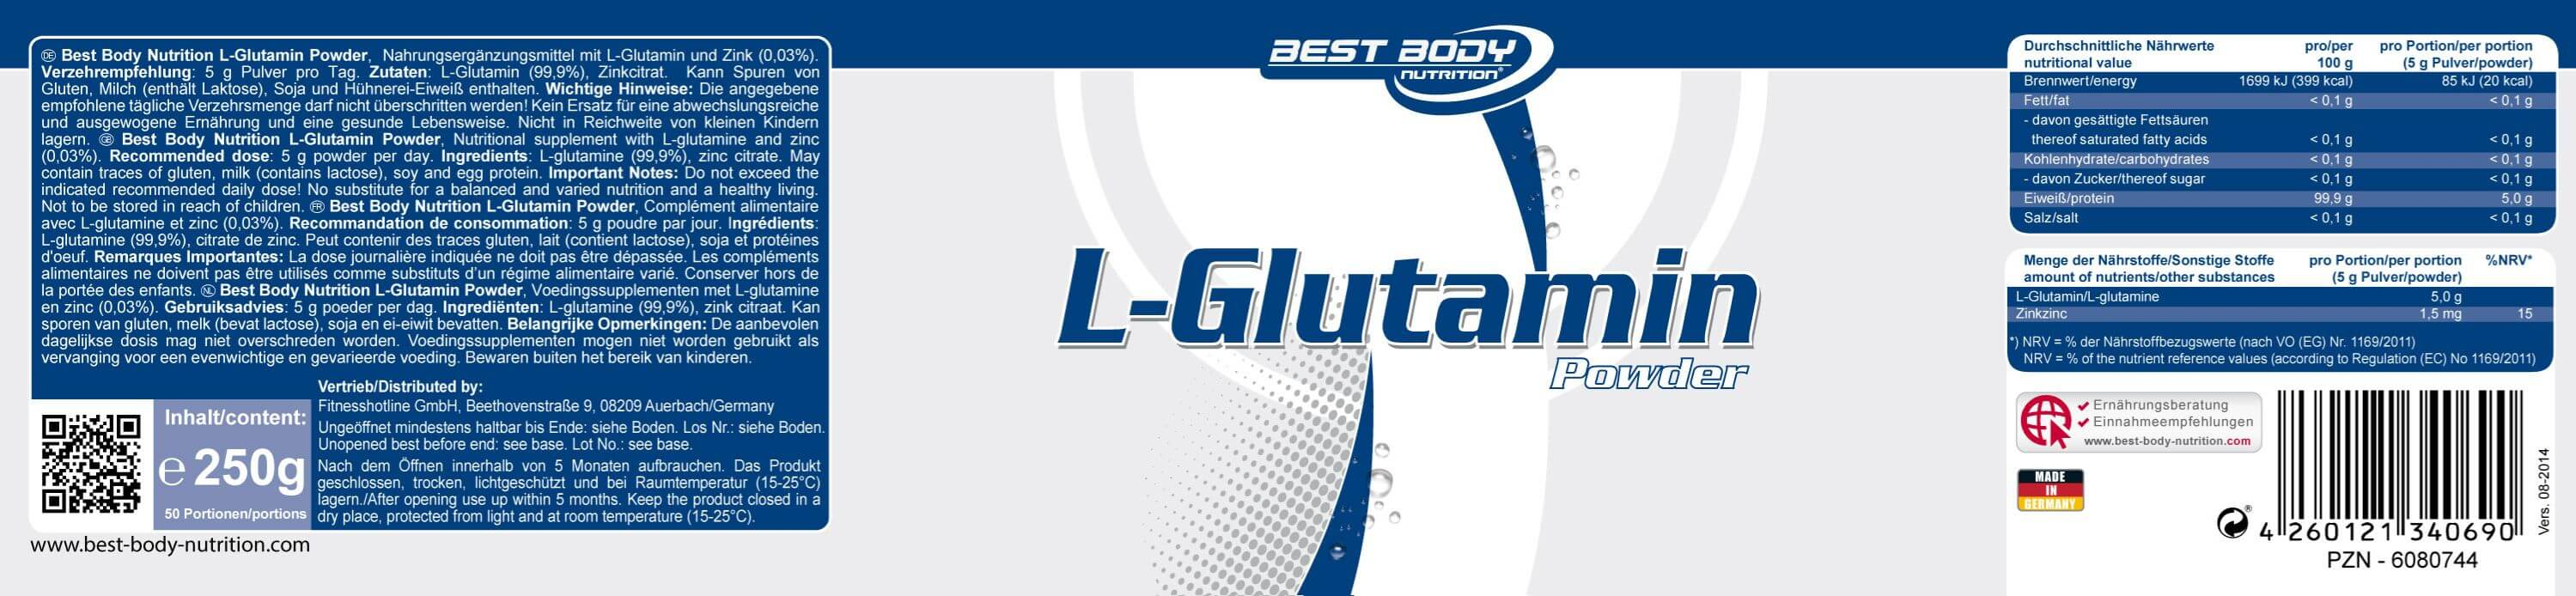 Best Body Nutrition L-Glutamin Pulver Etikett